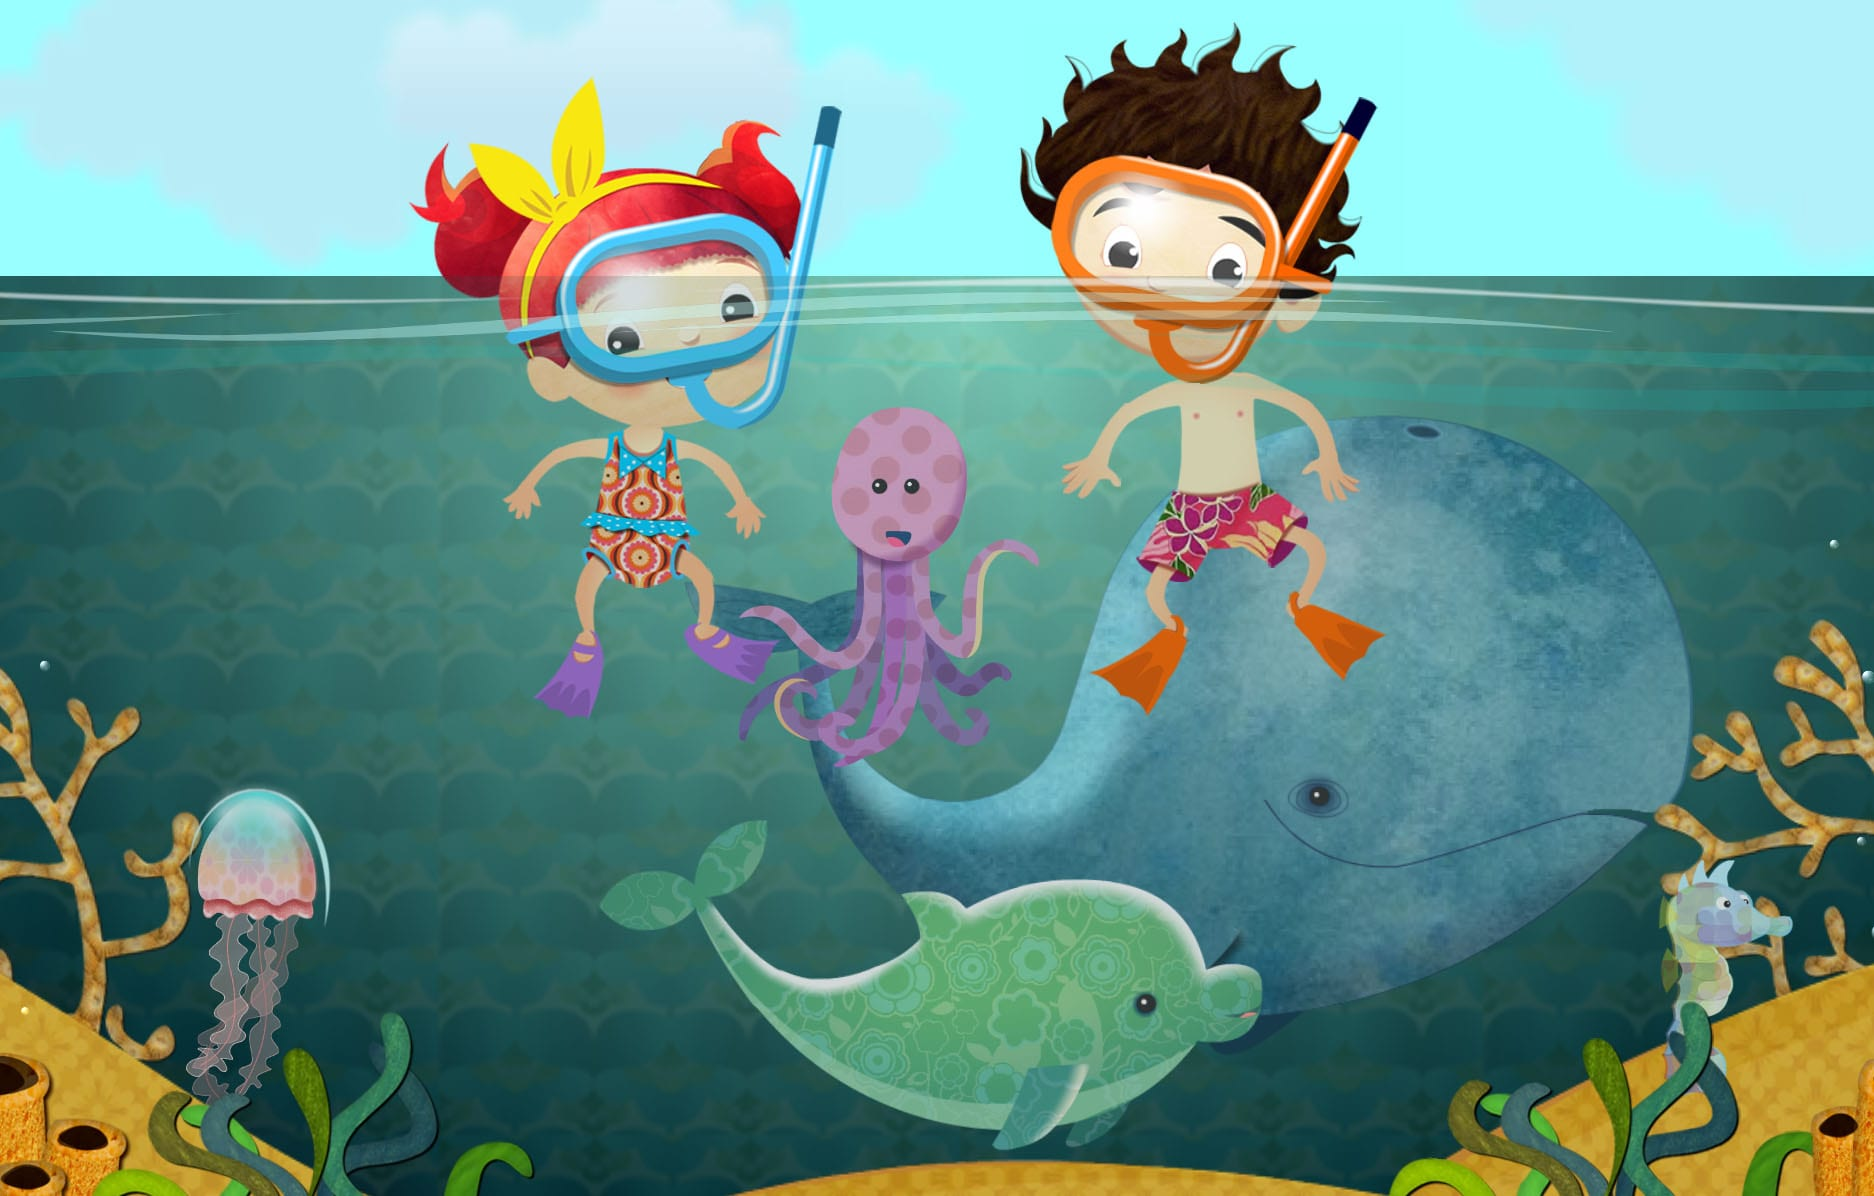 Under the sea scene from Peg and Pog a Language Learning App for Kids